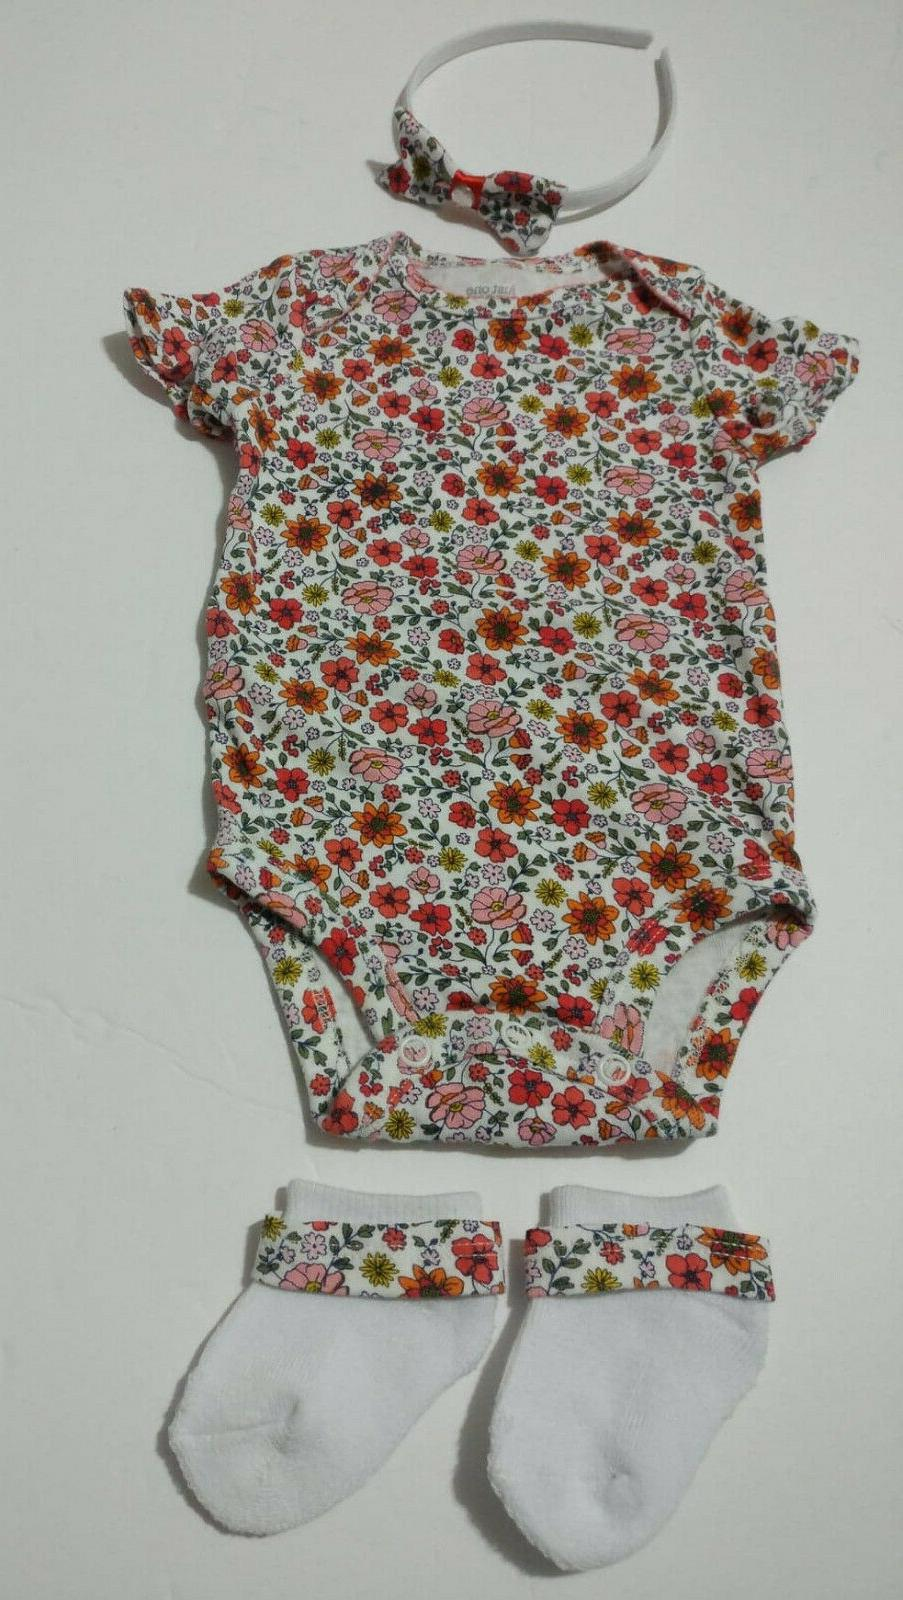 us baby girl clothing floral 3 pieces